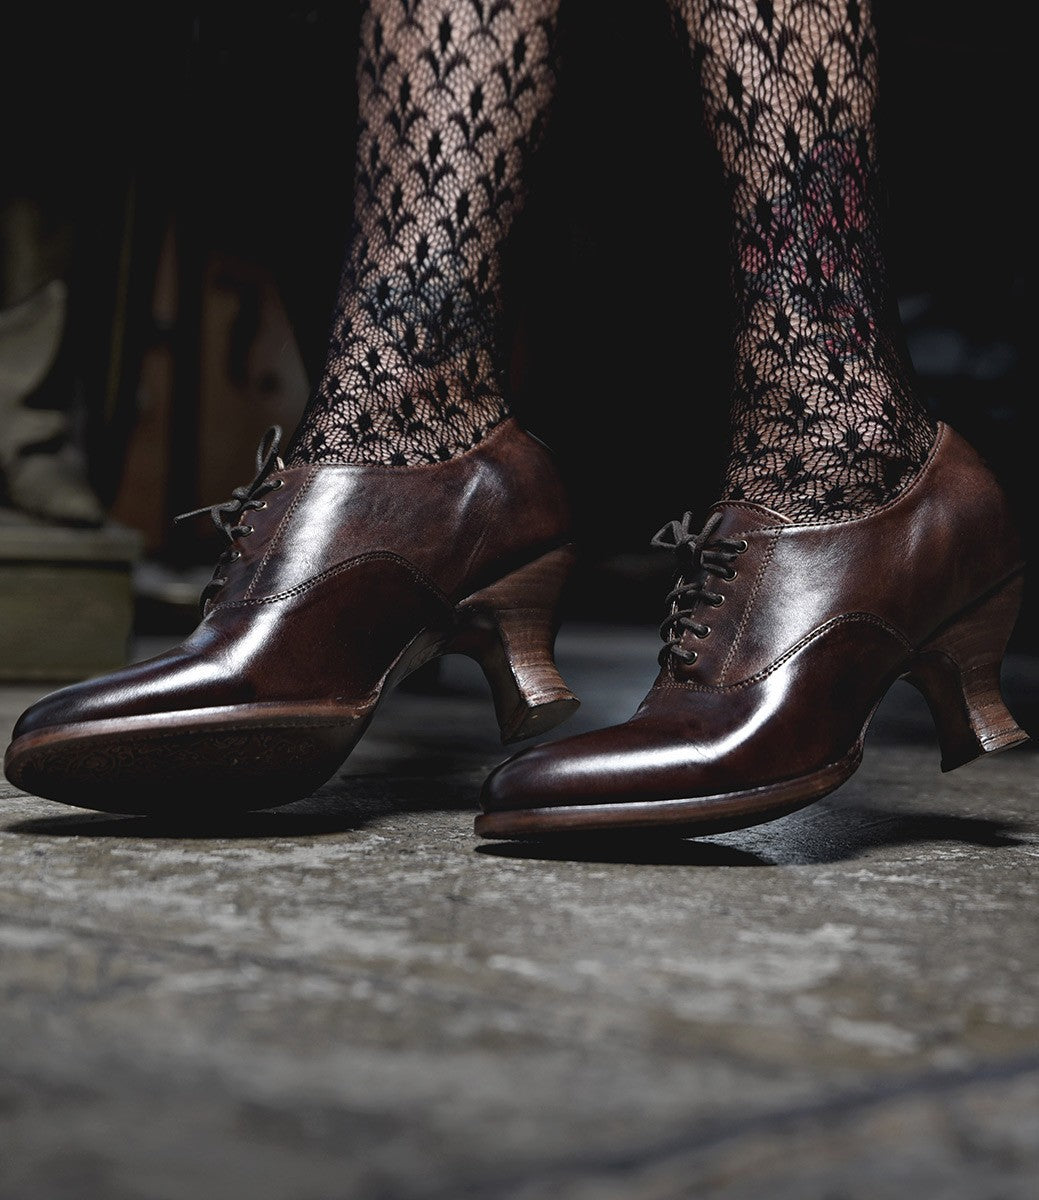 Edwardian Shoes & Boots | Titanic Shoes Victorian Style Leather Lace-Up Shoes in Teak Rustic $195.00 AT vintagedancer.com